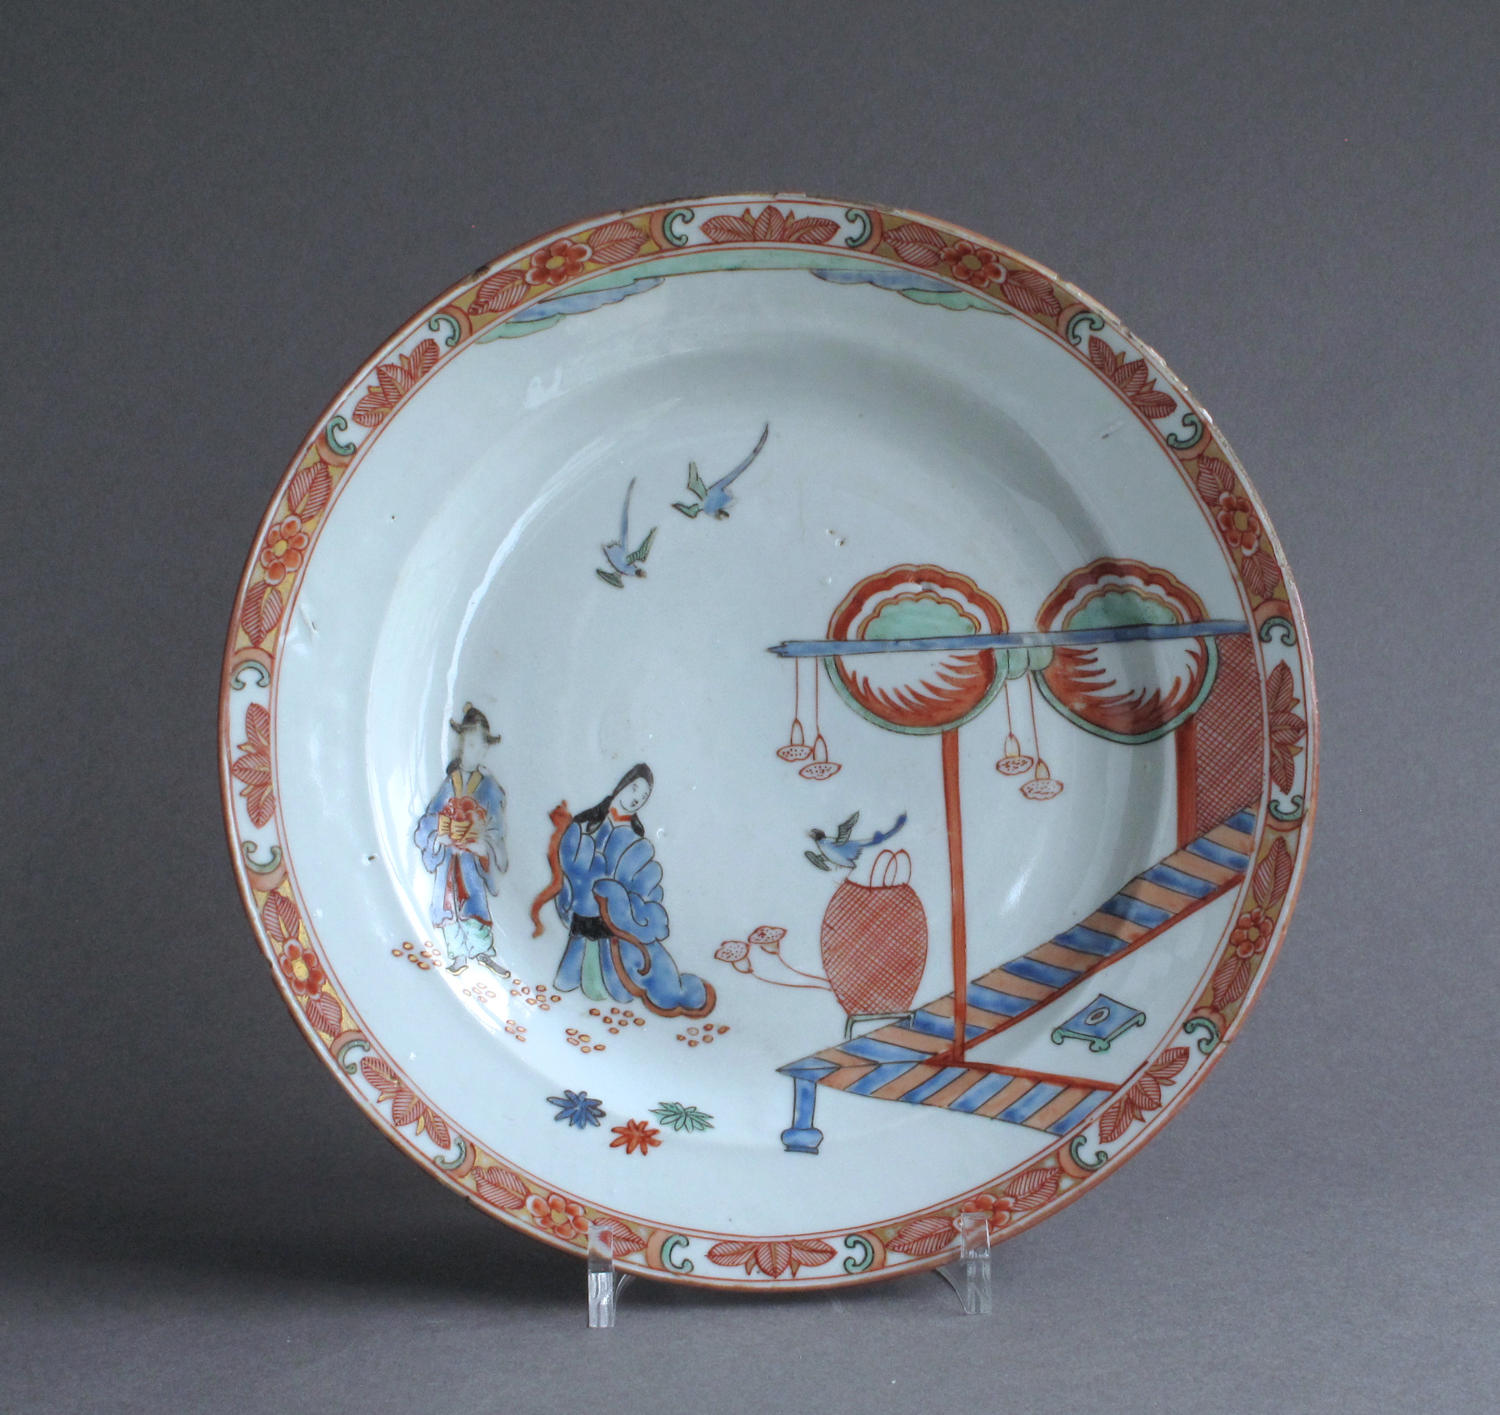 A Dutch-decorated Chinese plate with Japanese scene c1720